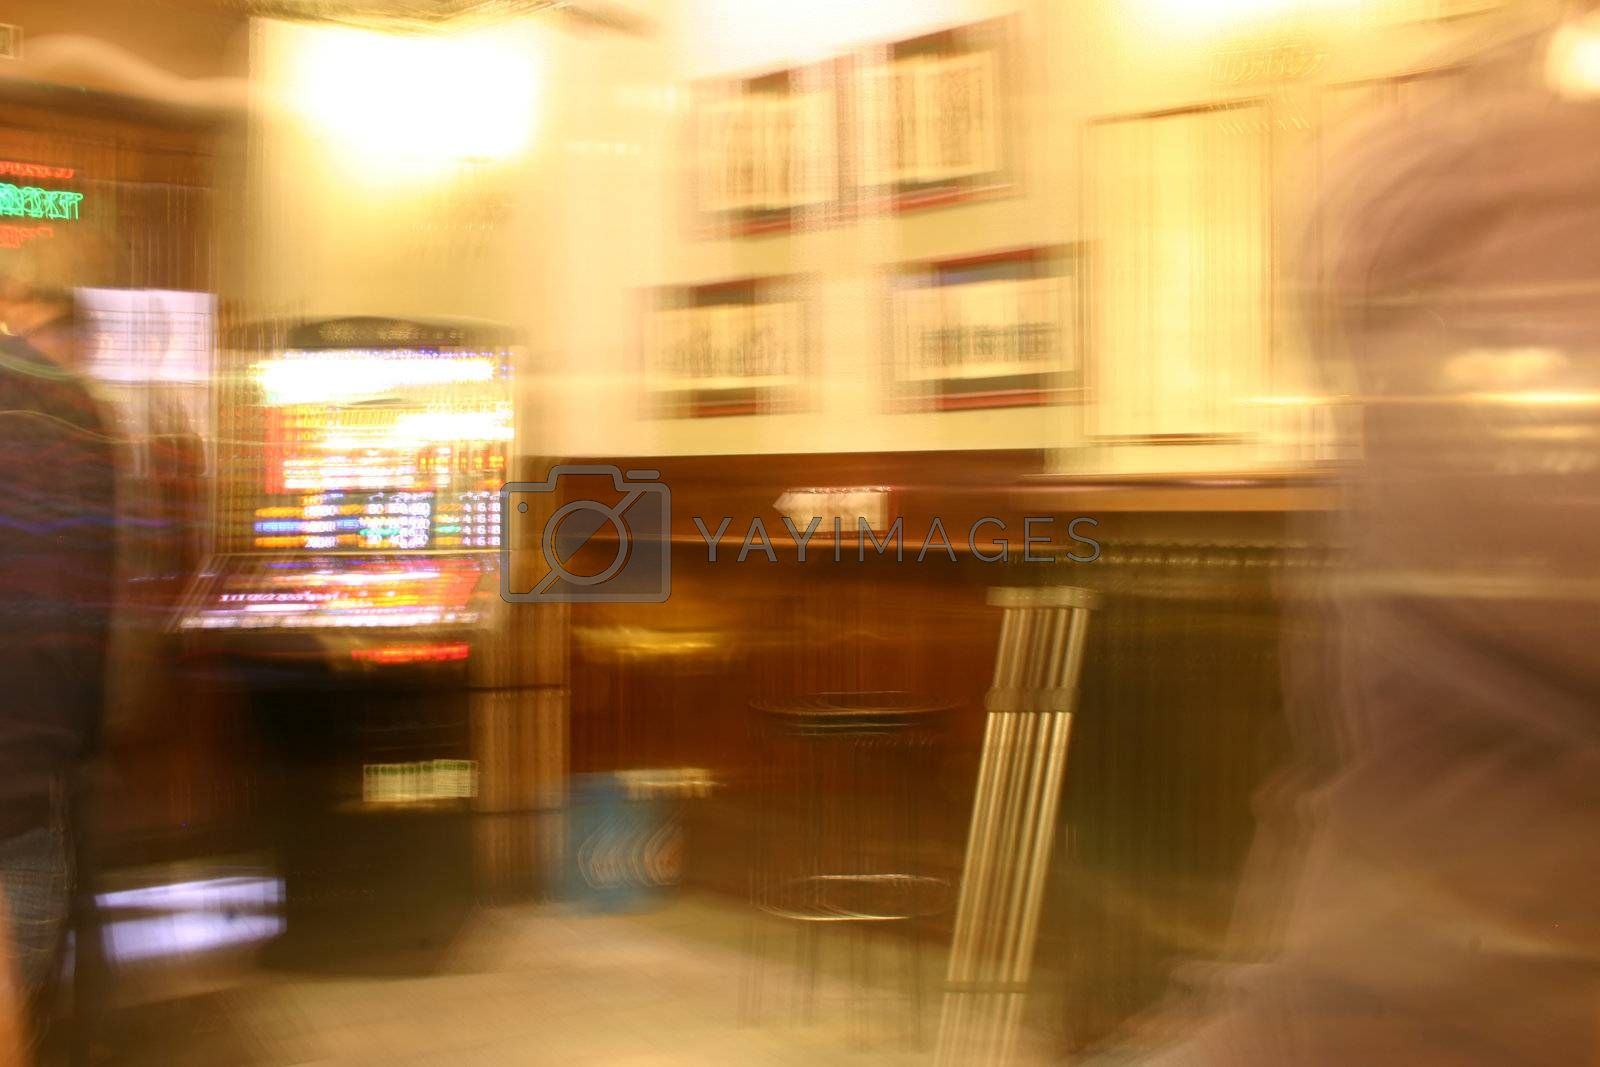 bar as it would be seen by a completely drunken person